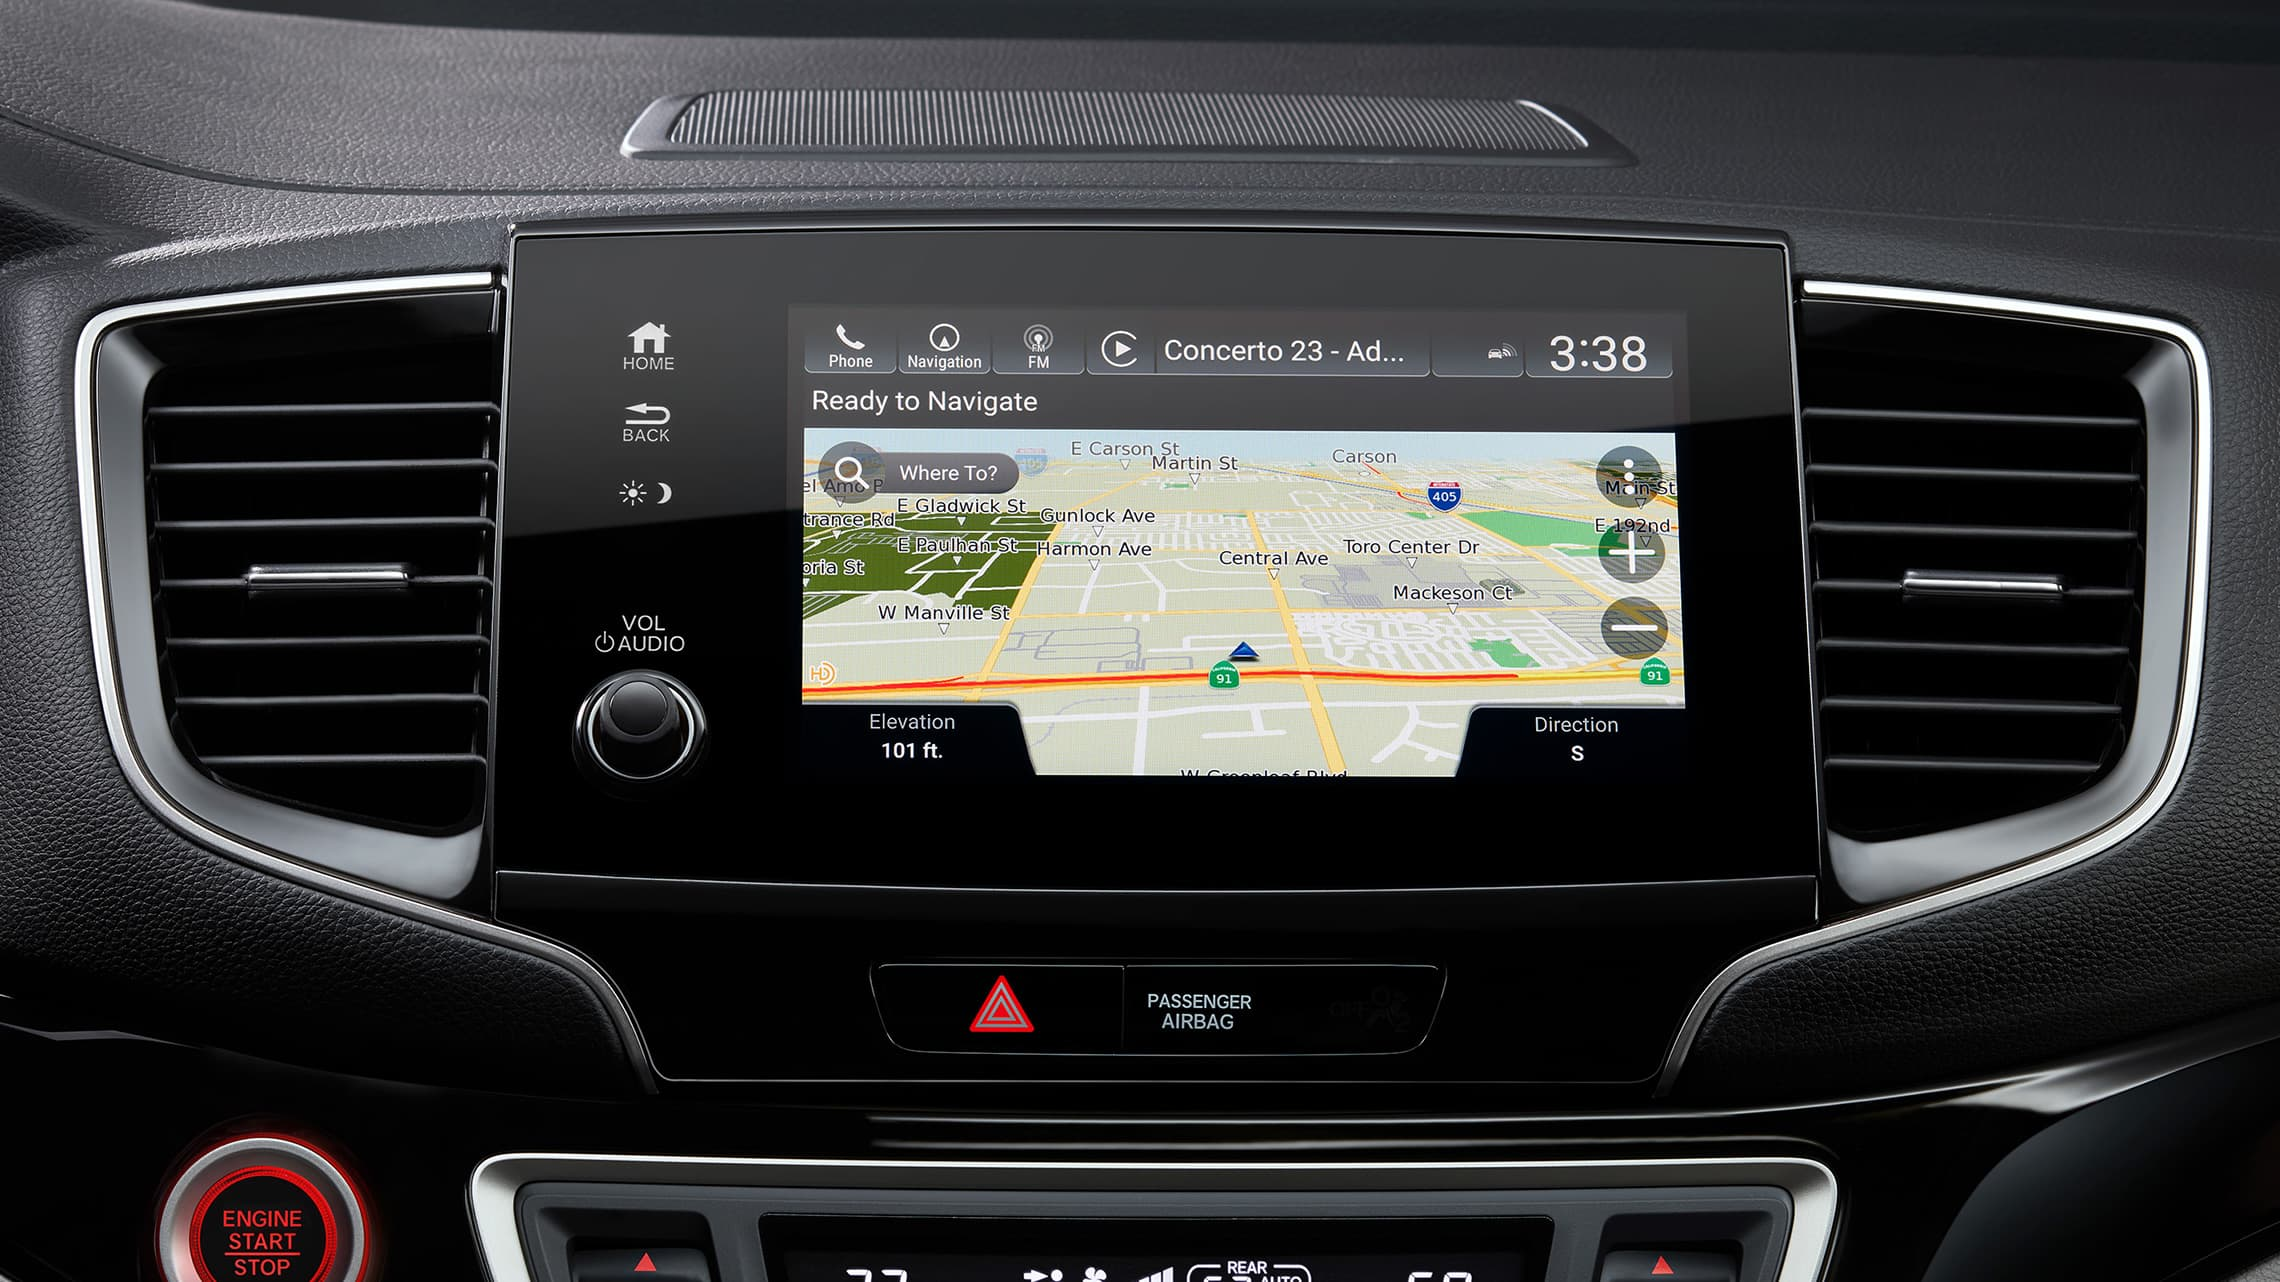 Honda Satellite-Linked Navigation System™ home screen detail on Display Audio touch-screen in 2020 Honda Pilot Elite.